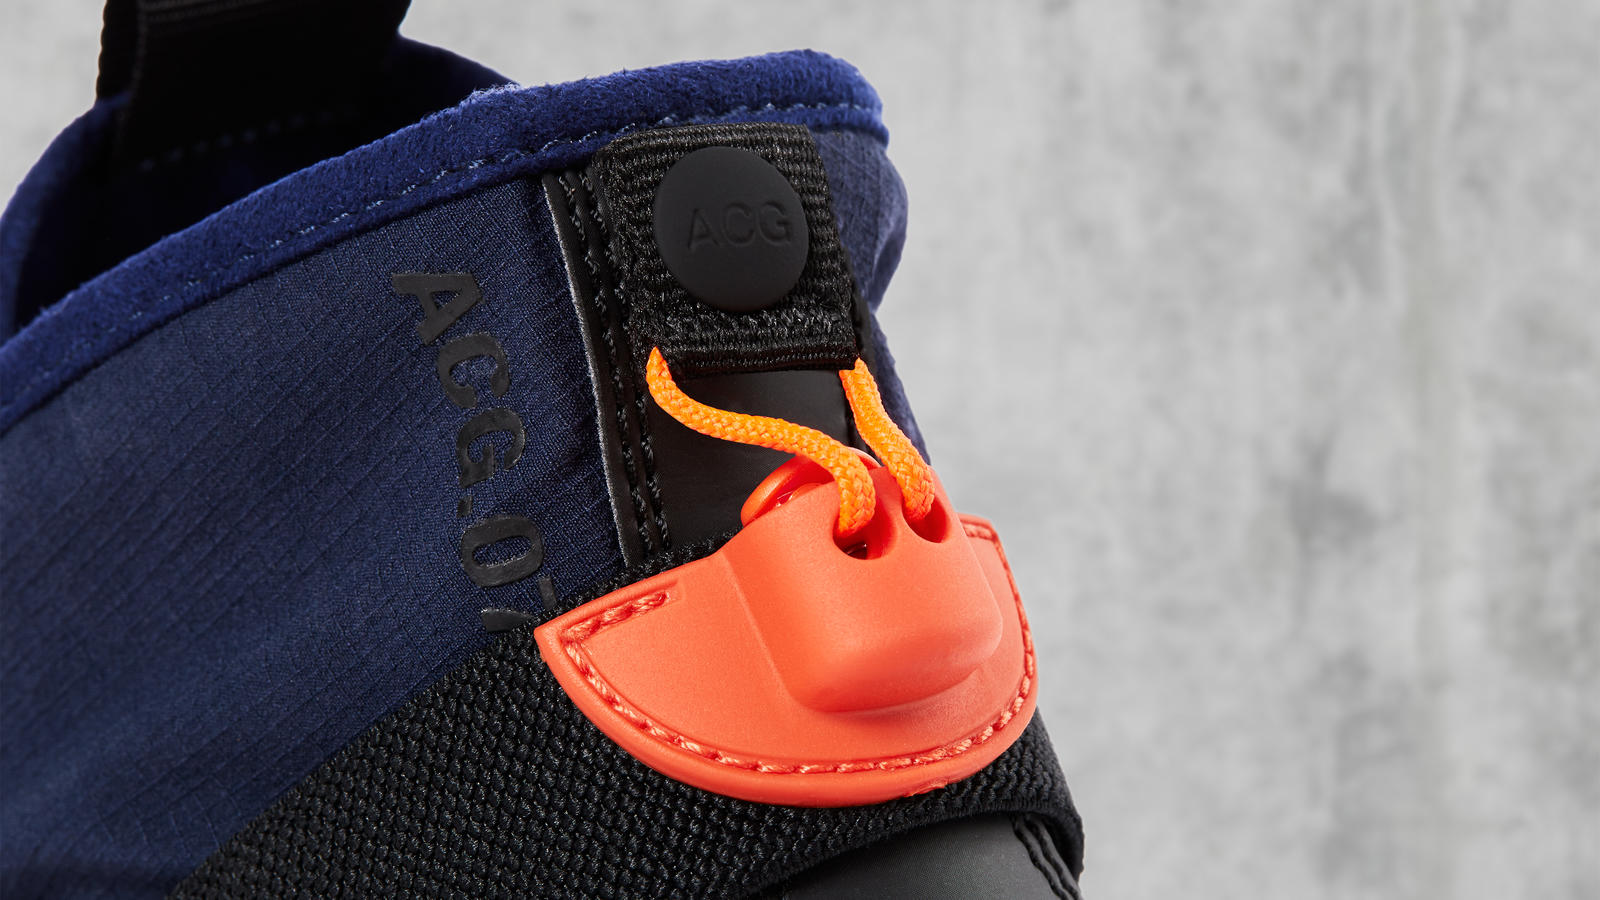 on sale e0d59 8474e 170410 FOOTWEAR ACG NAVY 0252 hd 1600.jpg